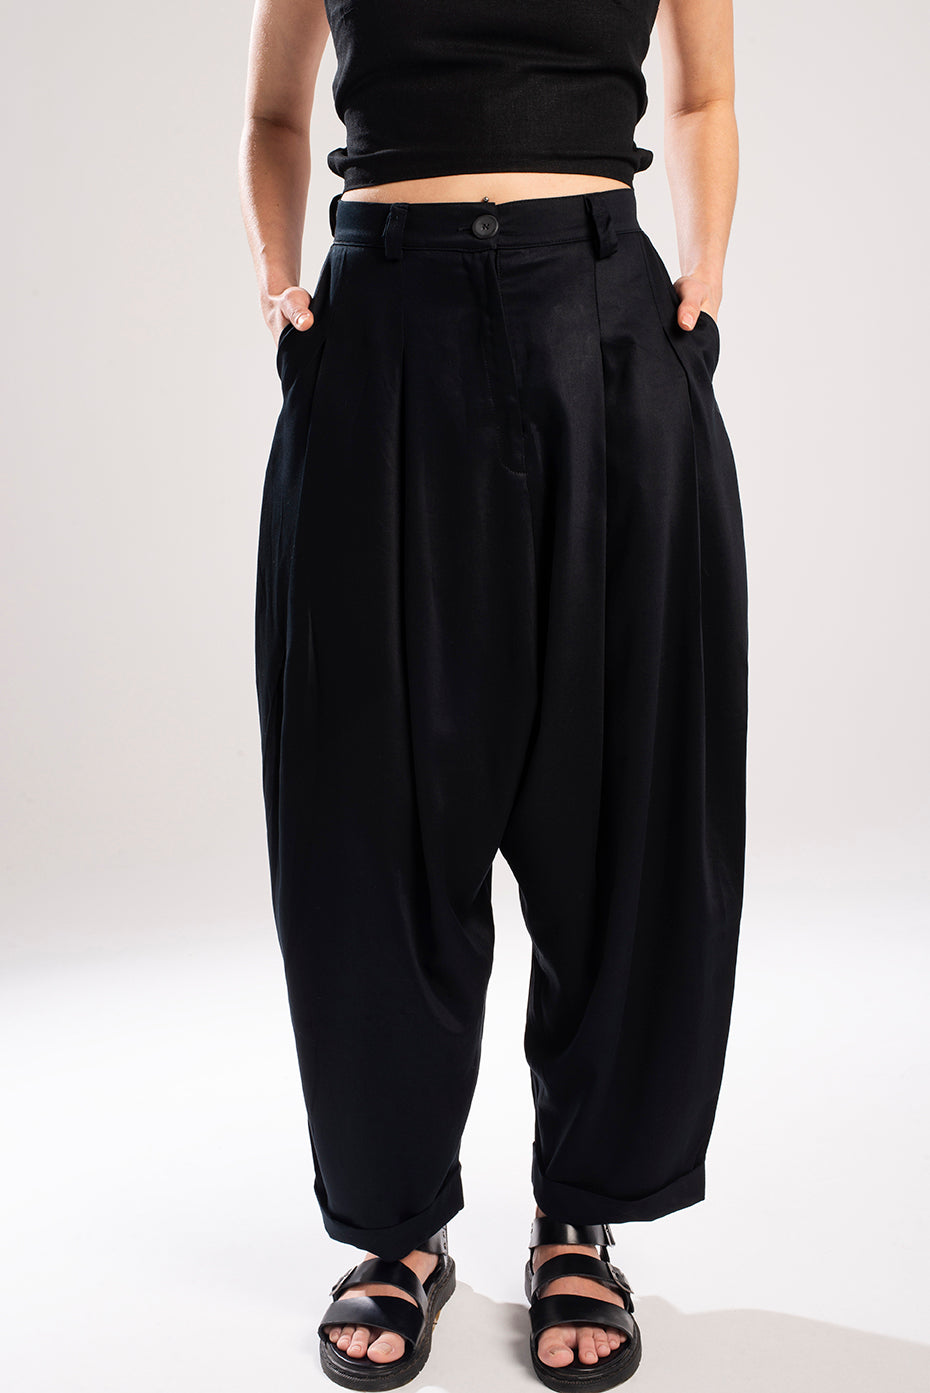 Vincent pants - Black